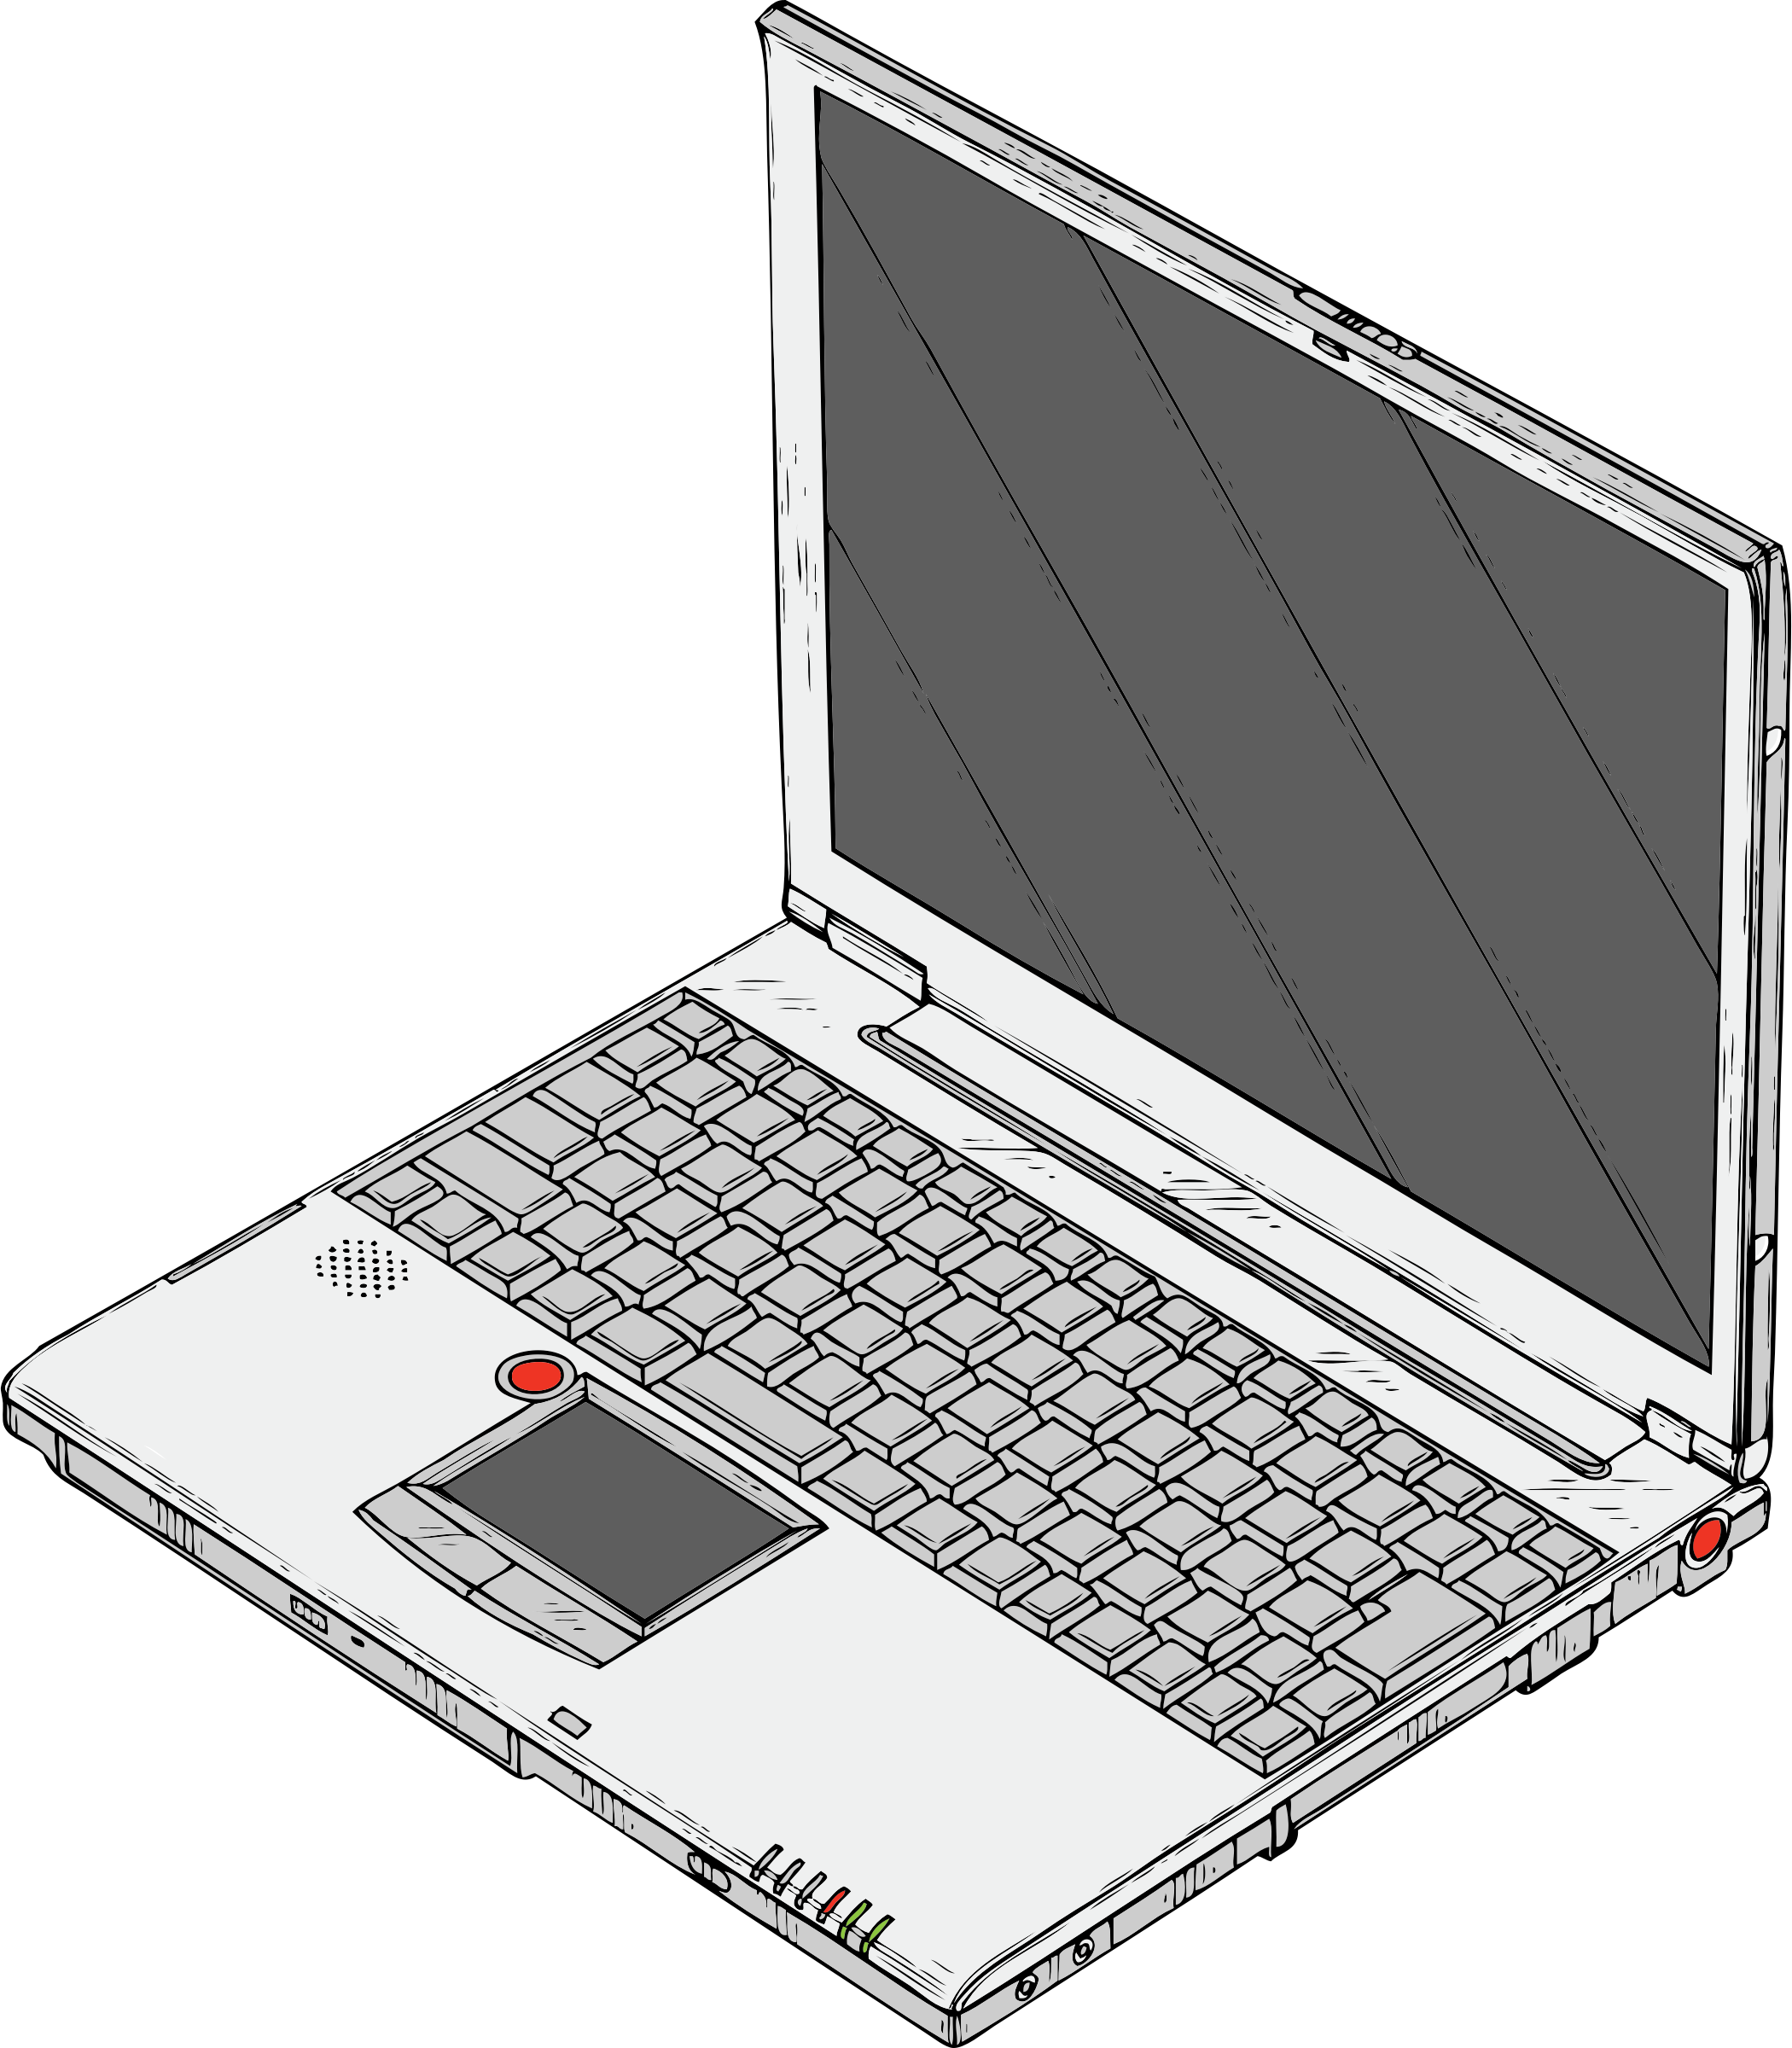 Drawing computers laptop. Computer for free